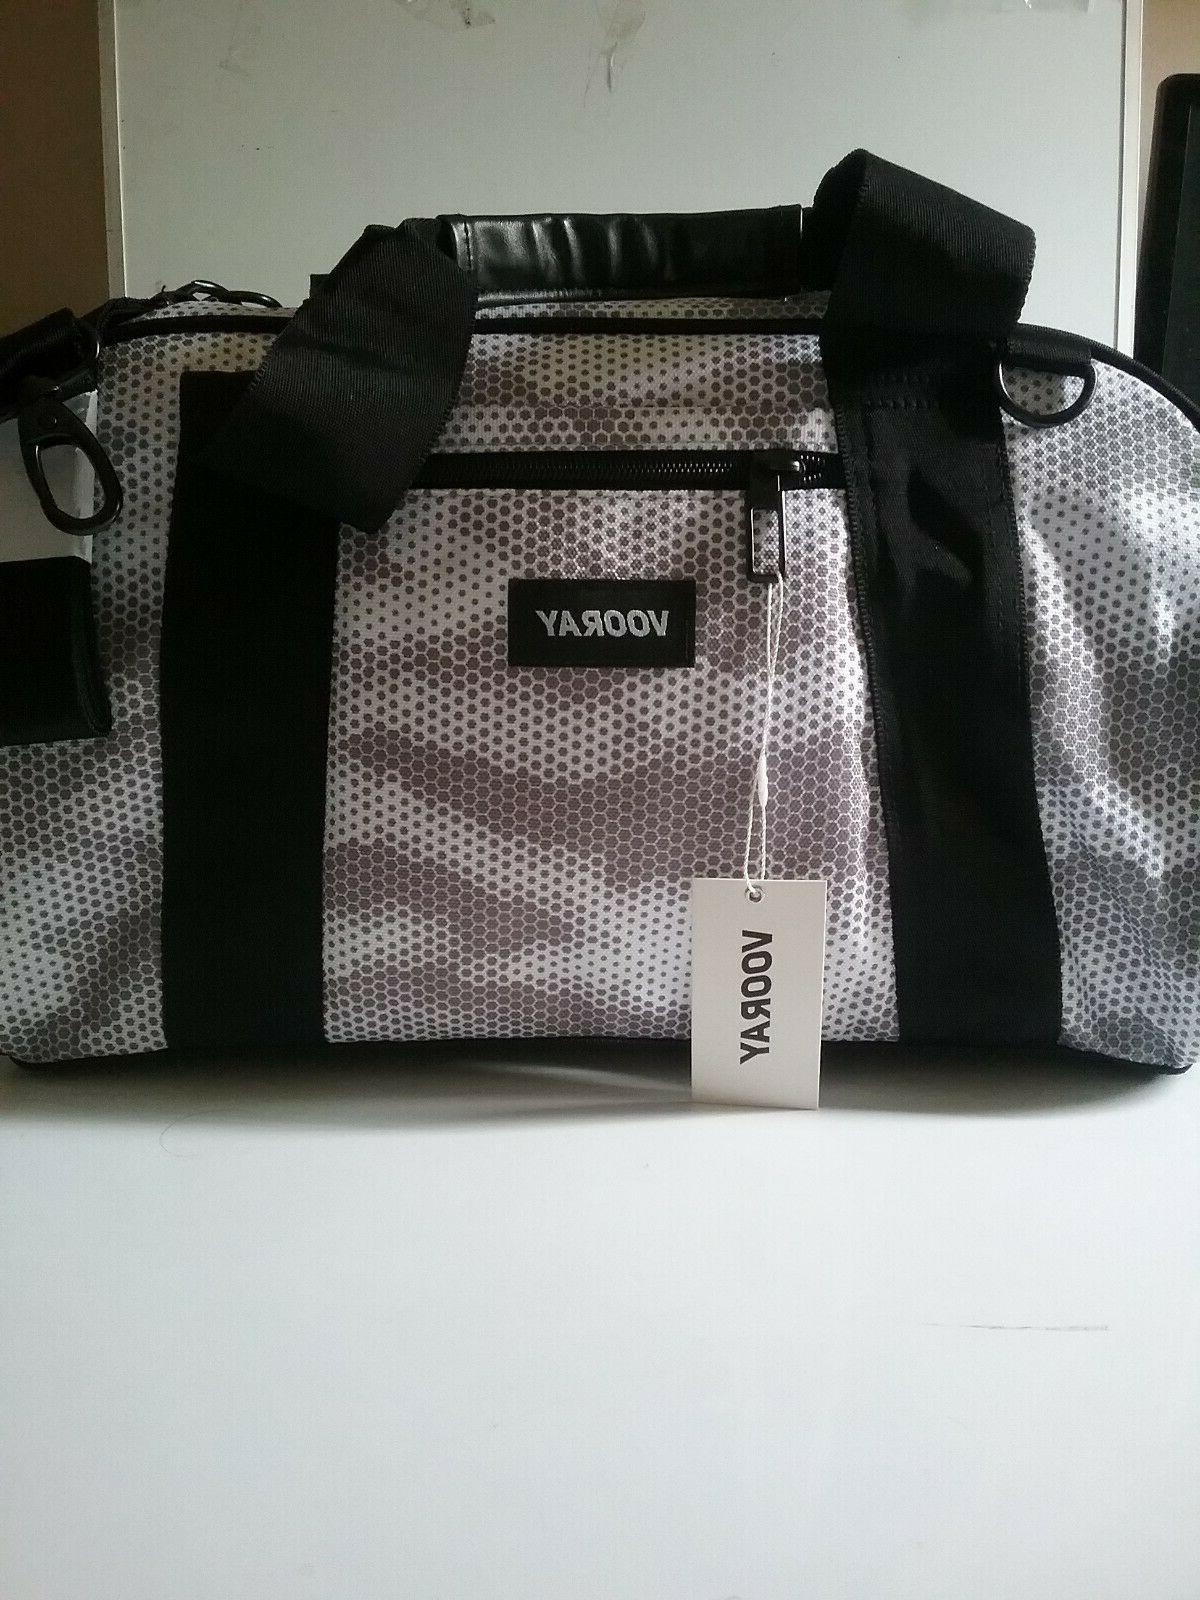 VOORAY Gym Duffel Bag CAMO * New Package Retail $50